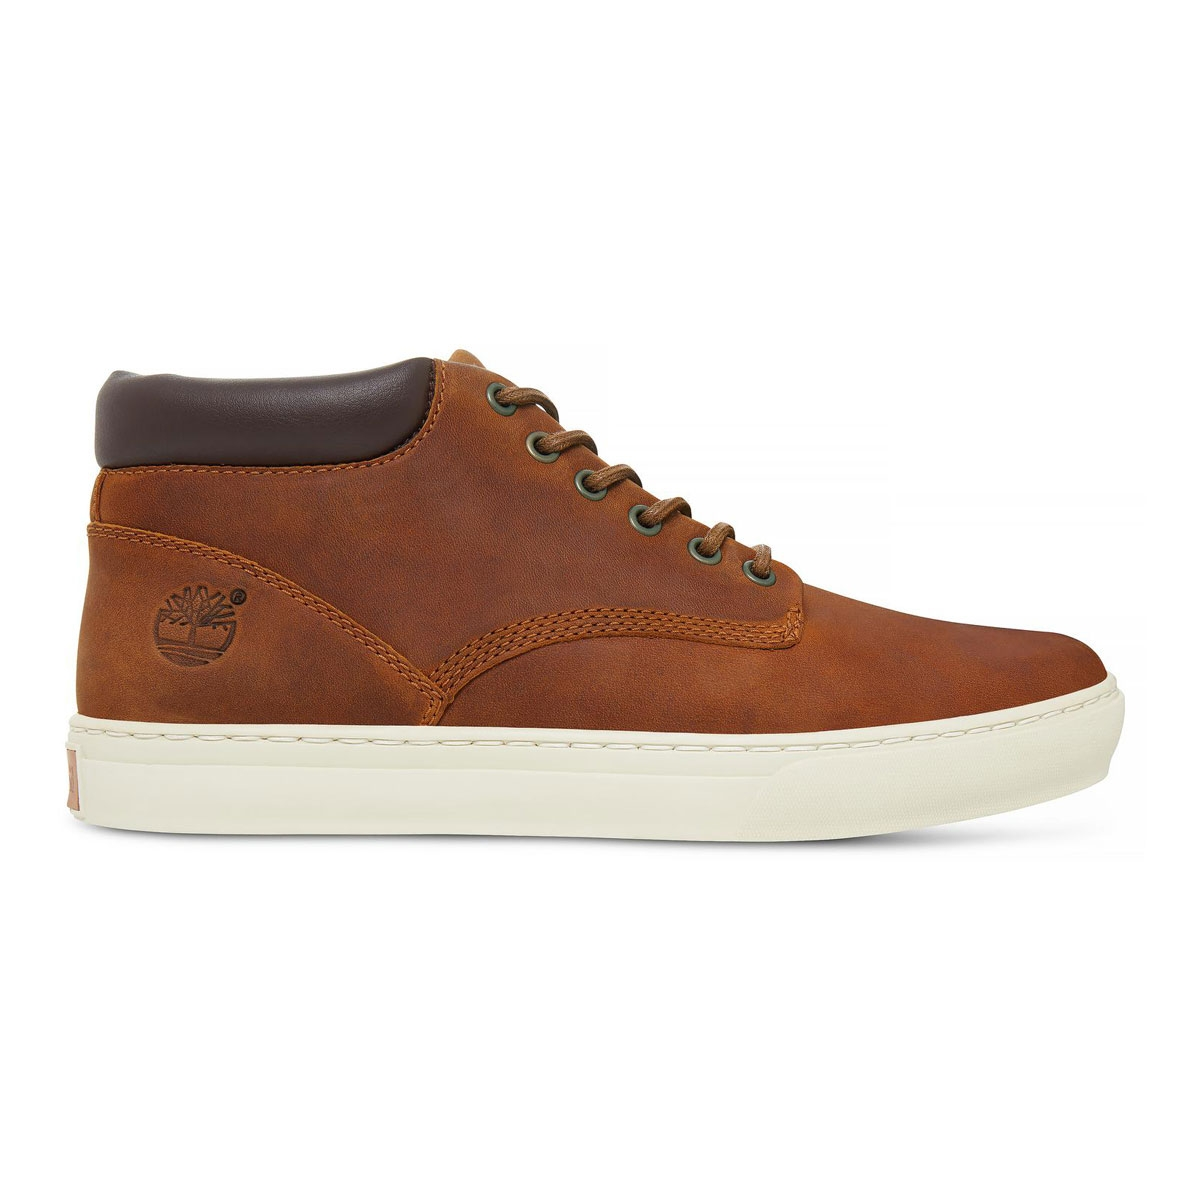 large discount wholesale outlet 50% price Timberland Adventure 2.0 Cupsole Chukka (Men's) - Glazed Ginger Roughcut